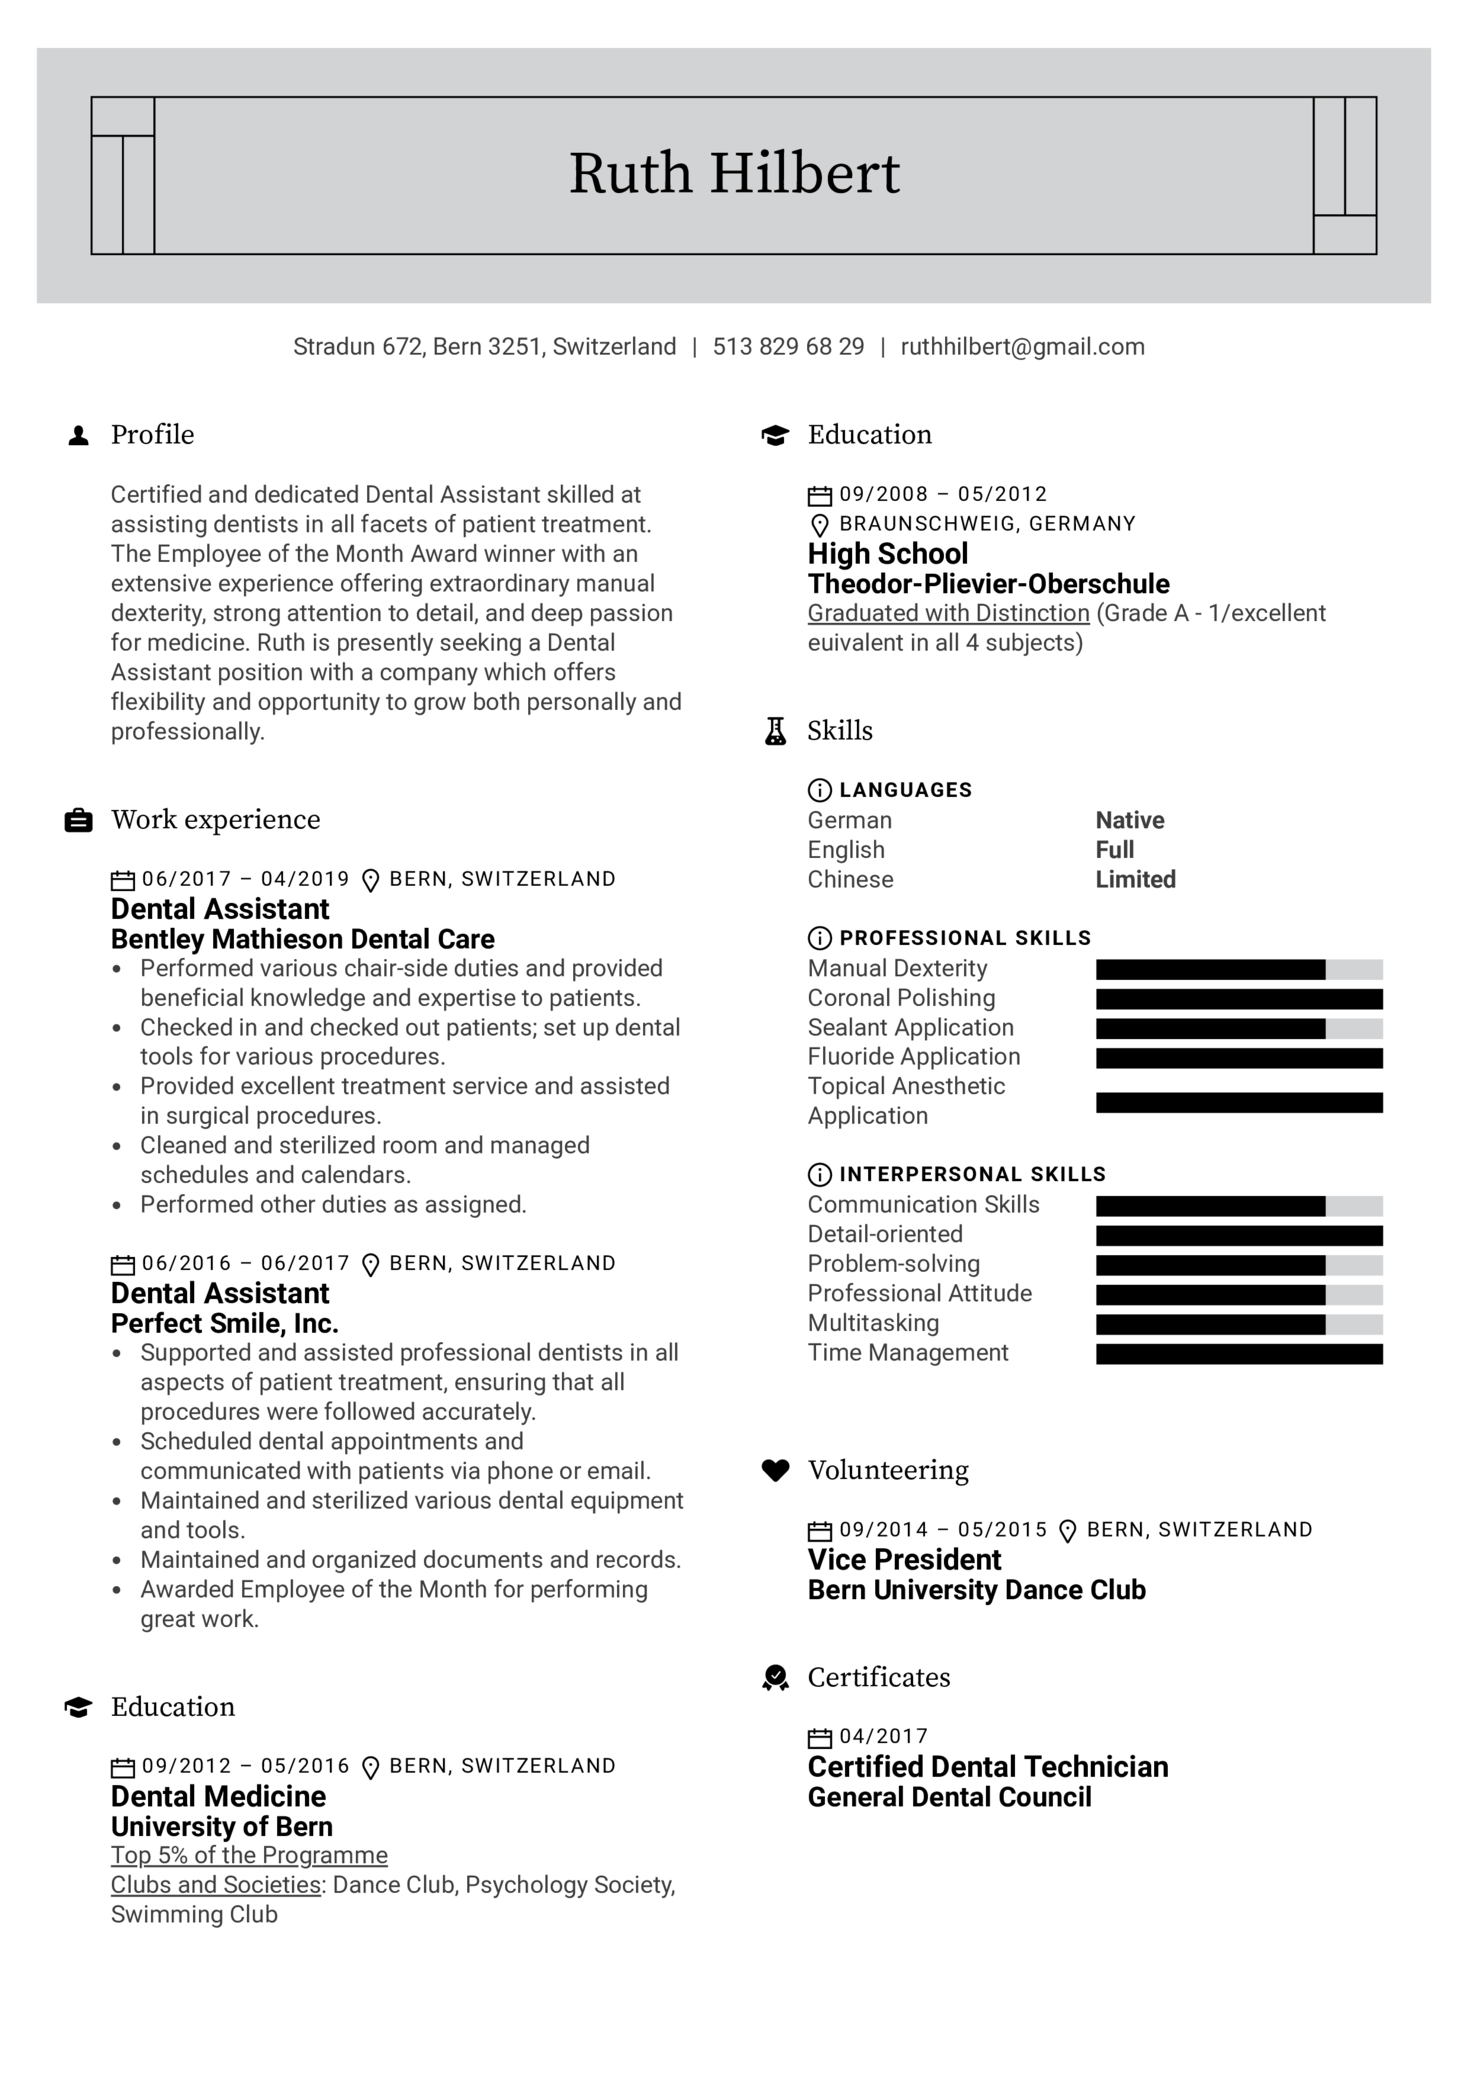 Dental Assistant Resume Example (Part 1)